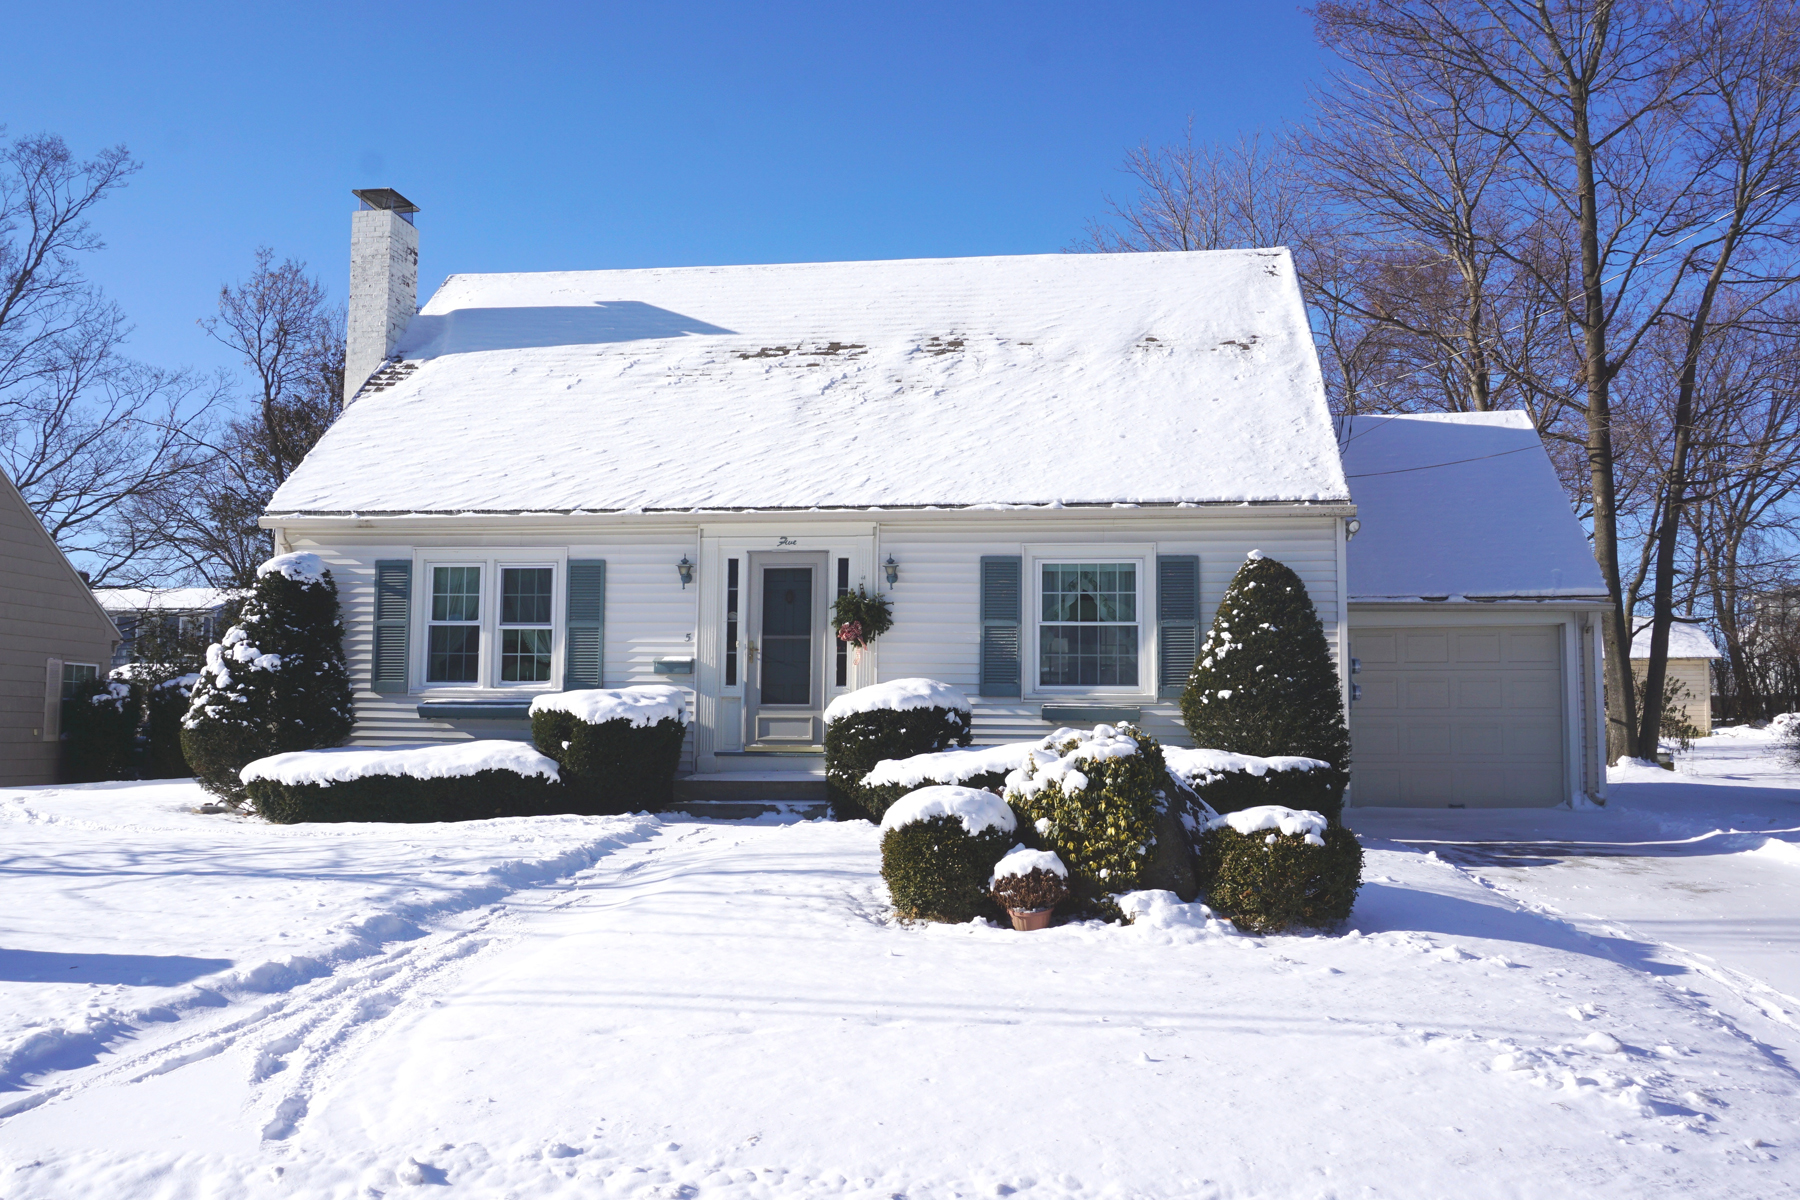 Single Family Homes for Sale at 5 Dartmouth Street, Rutland City 5 Dartmouth St Rutland, Vermont 05701 United States